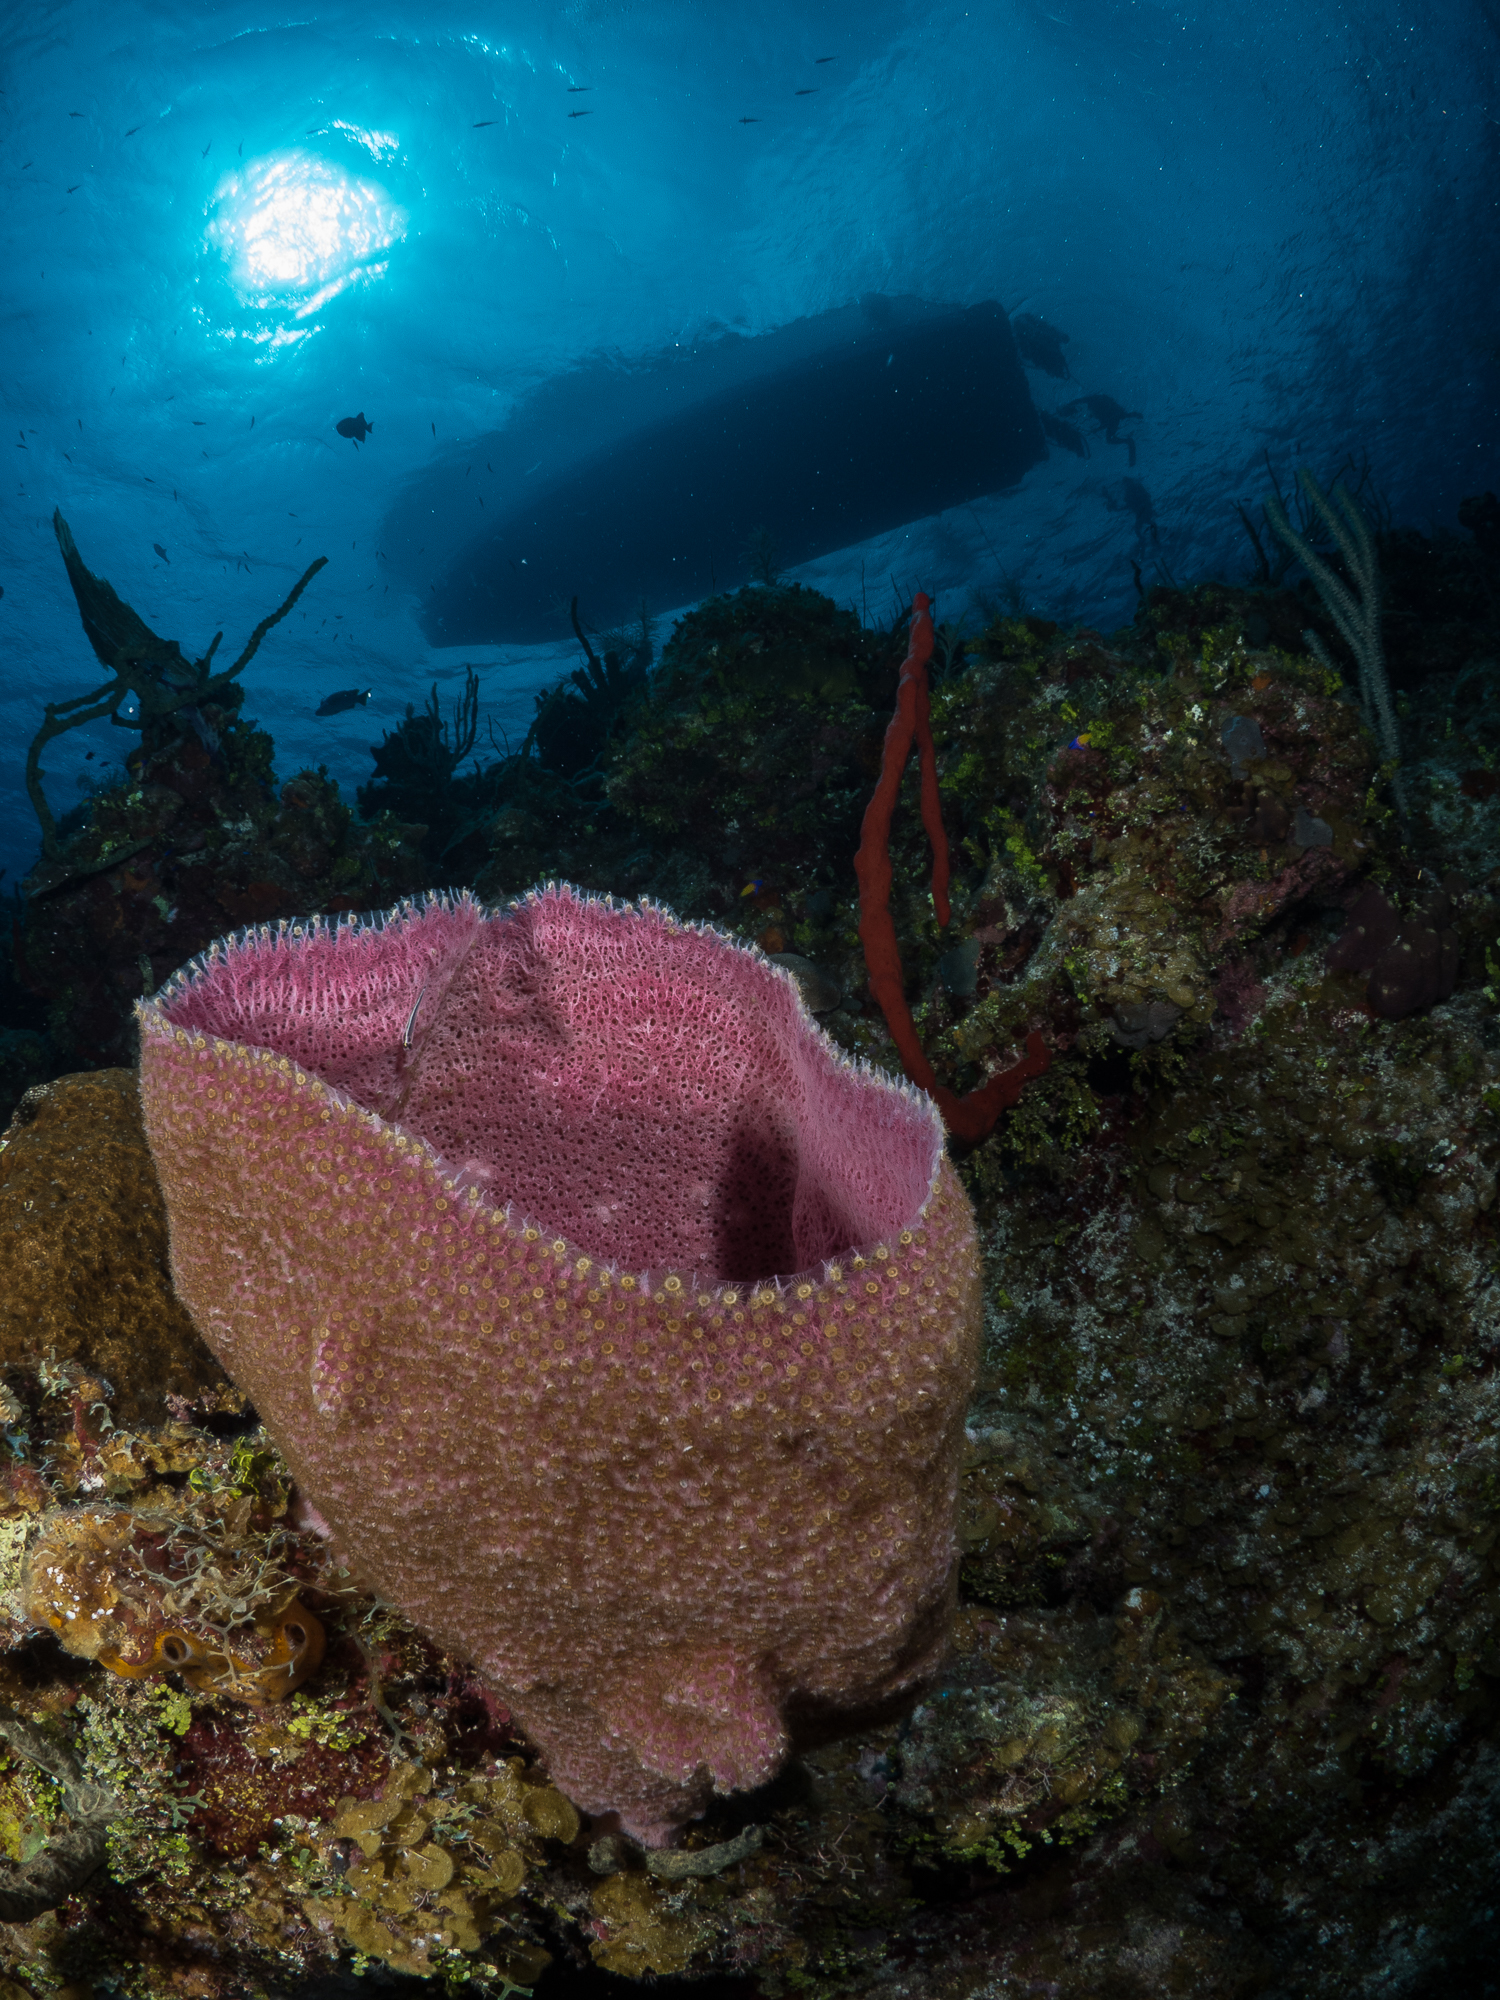 Panasonic GH​4 Underwater Review - Boat and Barrel Sponge